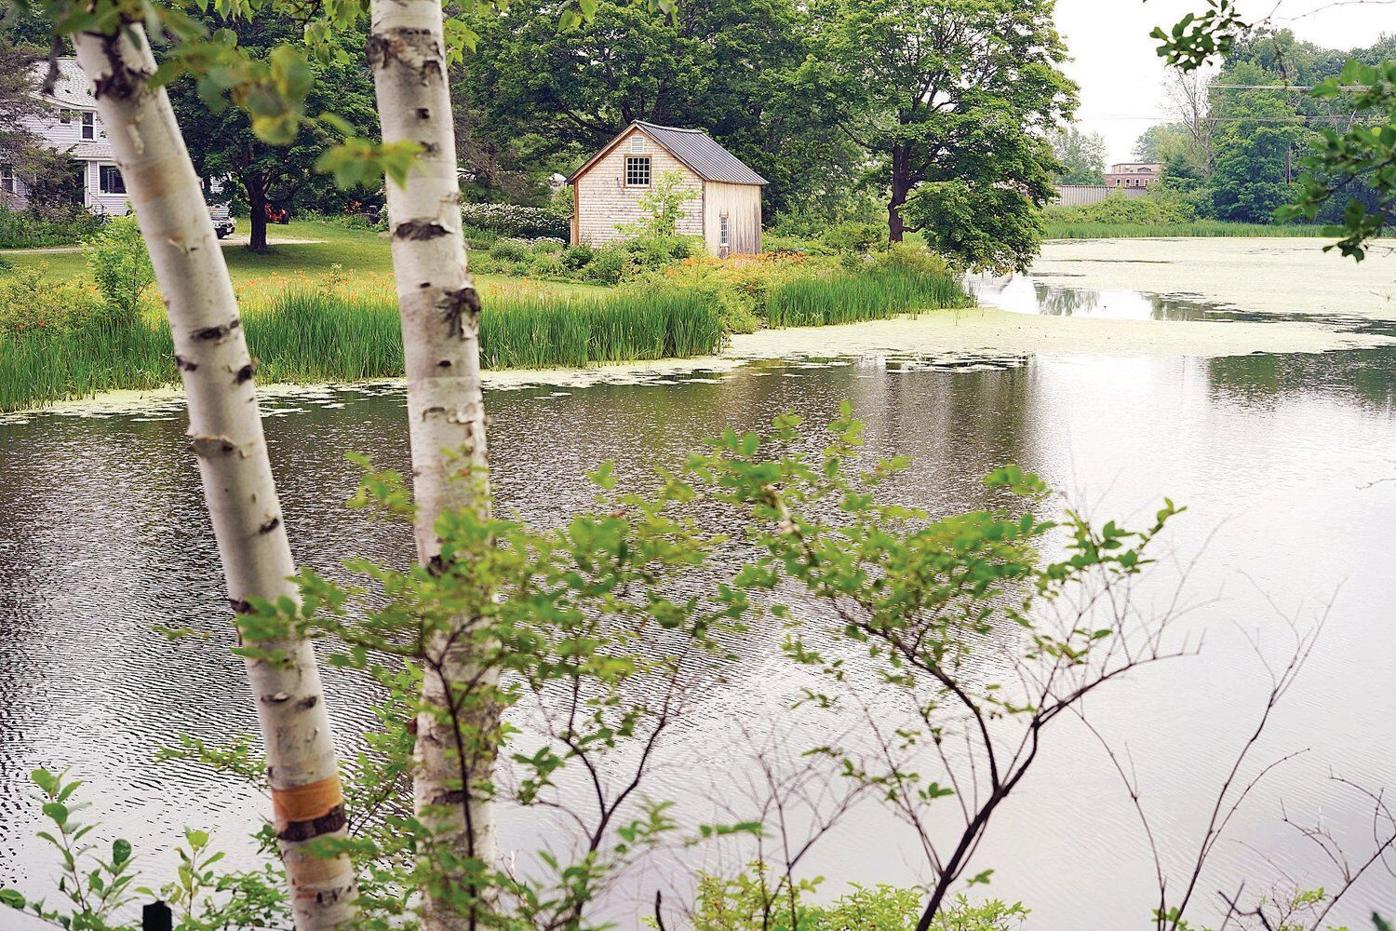 EPA spells out new terms for Housatonic River cleanup; public briefing set for August